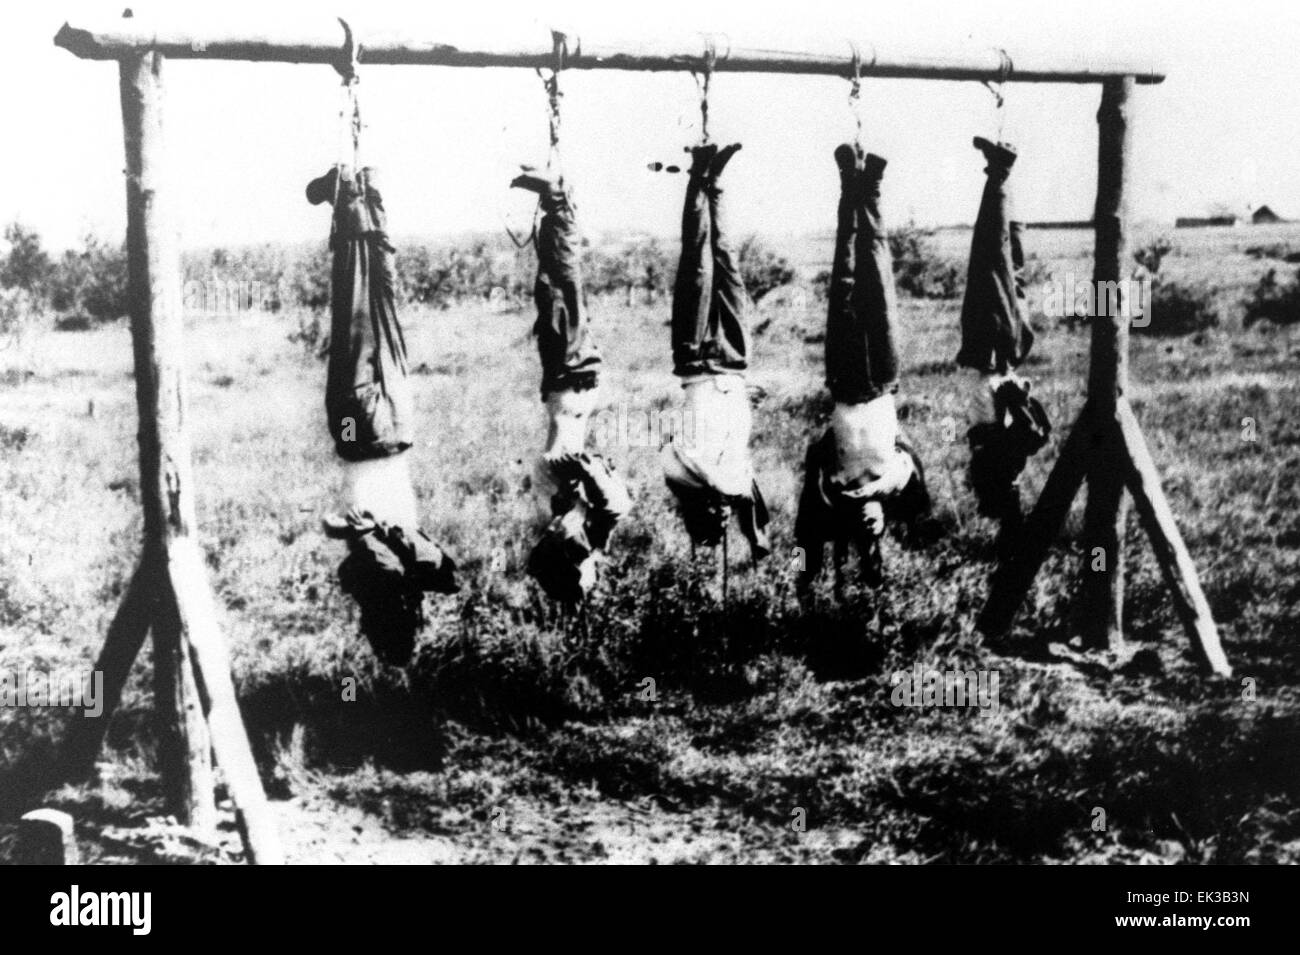 The picture shows hanged Soviet guerillas, 1943. (Repro photo by - Stock Image